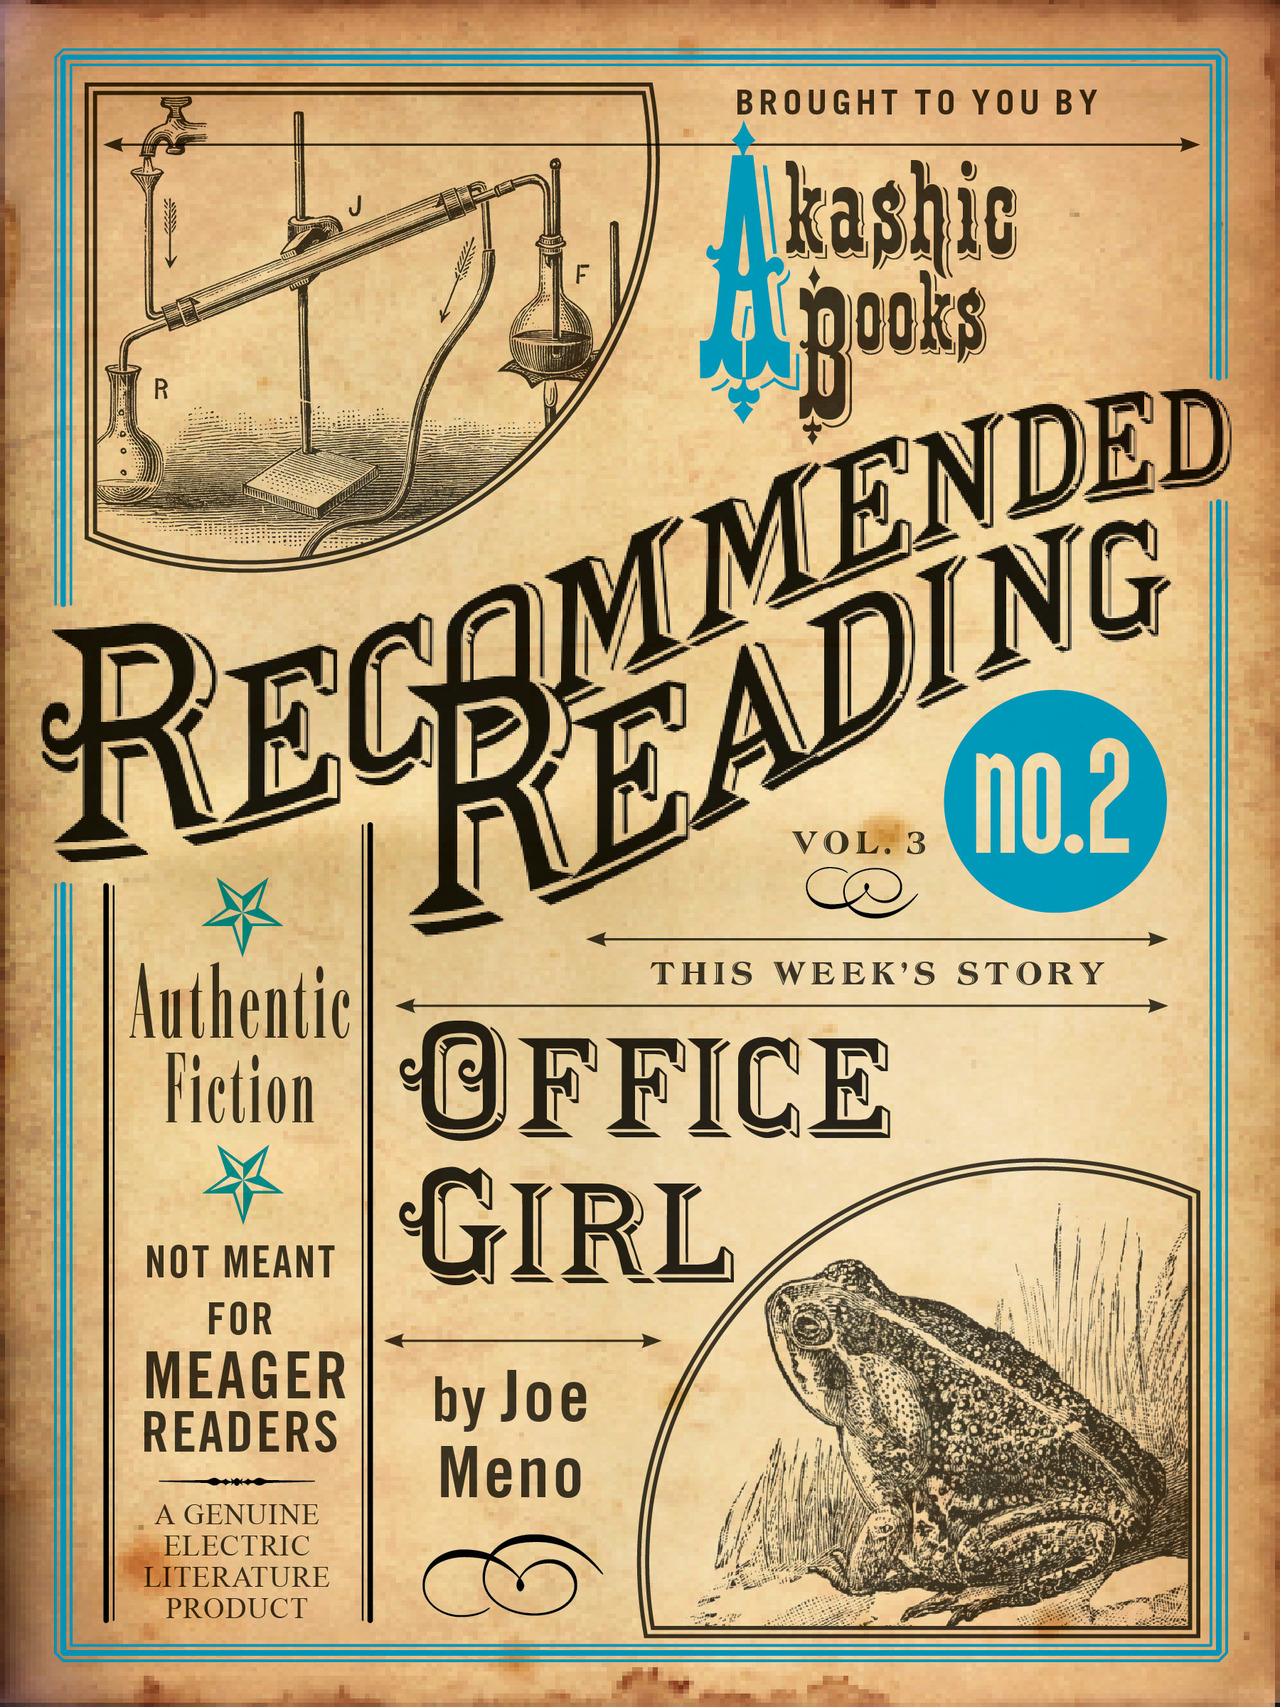 "recommendedreading:  An excerpt from Joe Meno's Office Girl: Odile nods and then pulls off her gray sweater, and she has a soft white T-shirt underneath, which traces the angular shape of her thin frame, and she is unbuttoning her pants but without standing up, which Jack finds pretty fascinating, and then this girl, this person he barely even knows, is in her white underwear, which Jack cannot help but stare at, and she is diving under the blankets, and Jack does not know what to do with himself, and so he unbuttons his shirt and decides to leave his pants on, and he begins to climb under the blankets, and she looks at him and says, ""You can take off your pants,"" and he nods, and turns around, and wonders what kind of underwear he has on, and he is secretly glad they are boxers, and relatively clean, and he feels an erection beginning to come on, and so he hurries beneath the comforter and sheets, and she turns away from him then, facing the wall, and there is her shoulder, and the shiny strap of her nude-colored bra, and freckle after freckle along her long neck, and he does not know if he should say something or do something else, and so ceases to think, only lies there, and in the absence of thought he listens to the girl breathing, and she turns her head toward him a little and says, ""Goodnight,"" and they sleep like that together for the first time without really touching each other, but the feeling is enough, at least for now, the inexplicable thrill of someone being beside you in a strange bed, and all that it might mean. Read the rest in Recommended Reading, your weekly dose of free fiction."